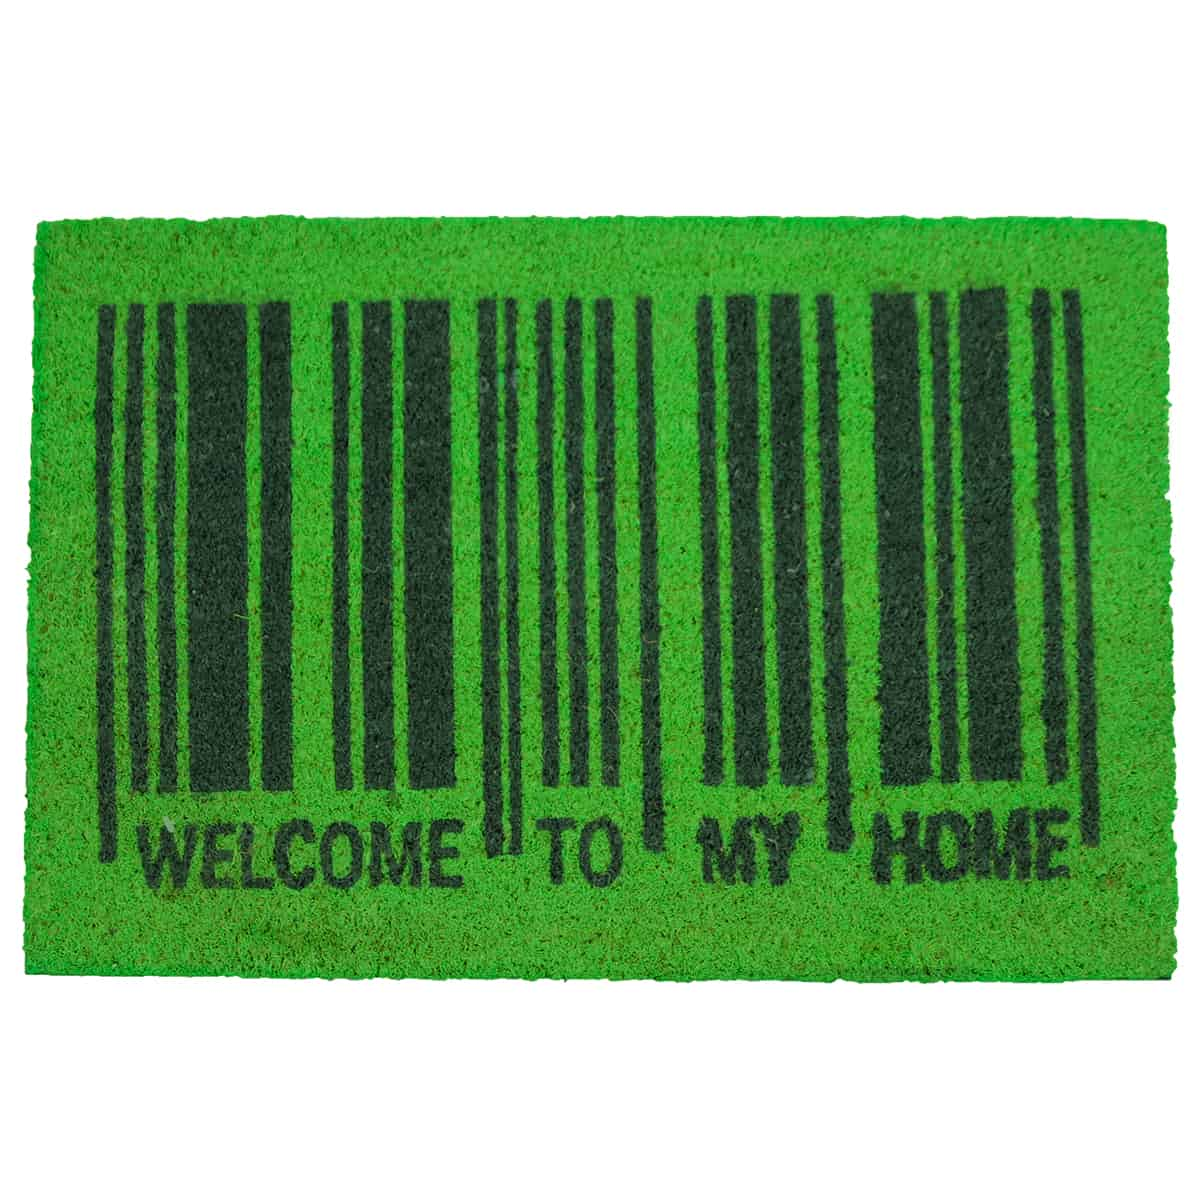 Sheltered Printed Front Door Mat Welcome To My Home Barcode Coir Coco Fibers Rug 24x16 Green Black